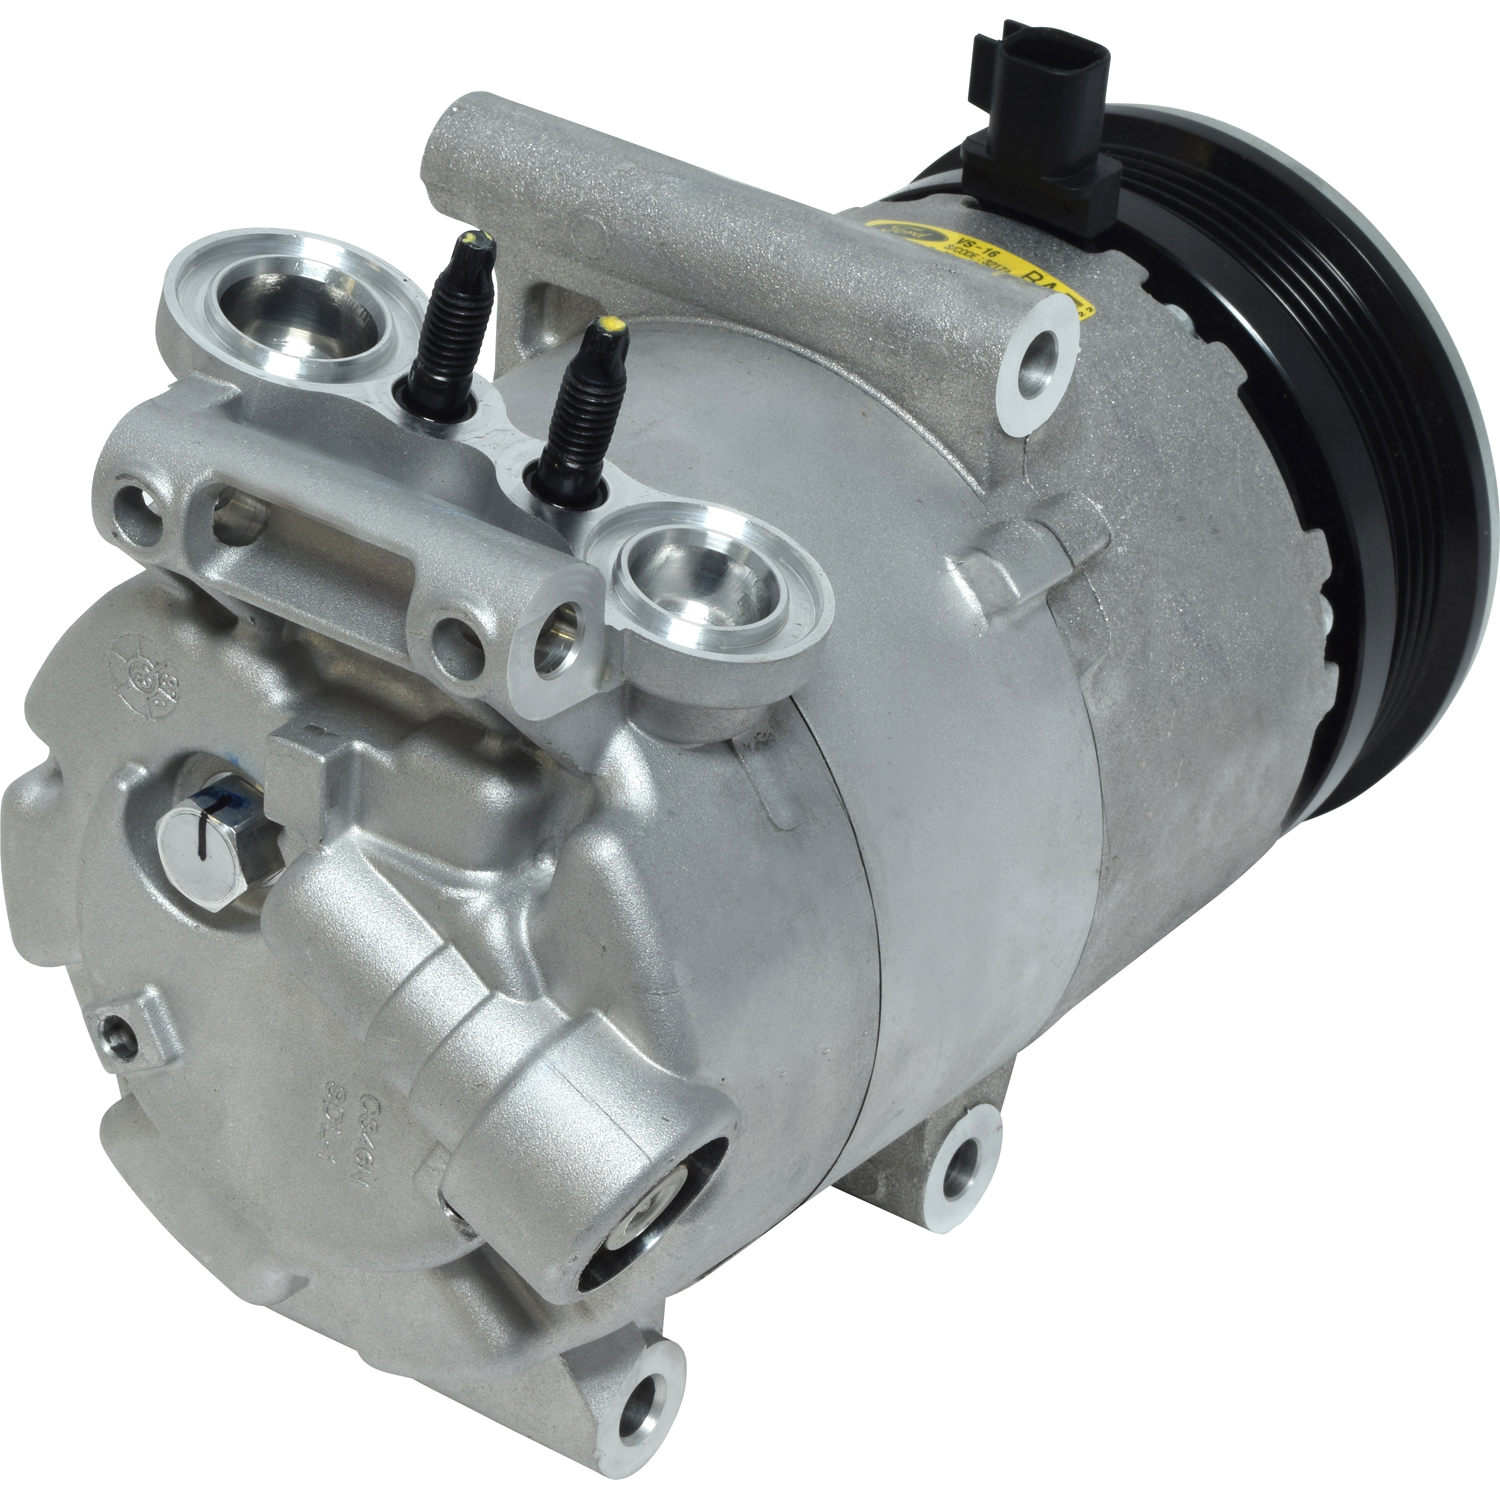 CO 29079C VS16 Compressor Assembly